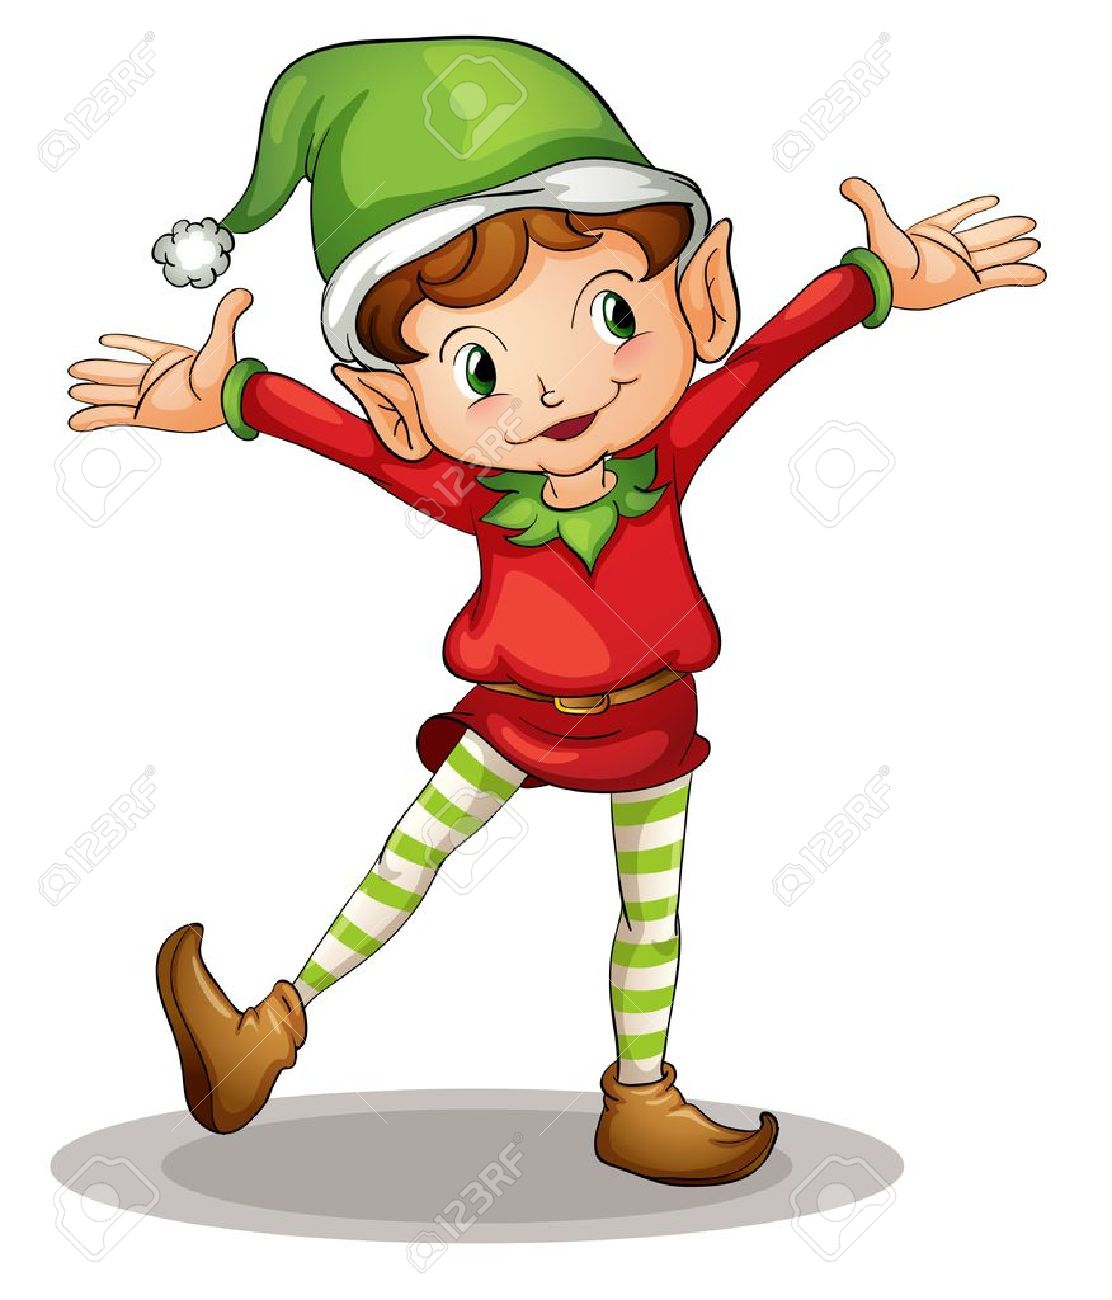 illustration of a christmas elf royalty free cliparts vectors and